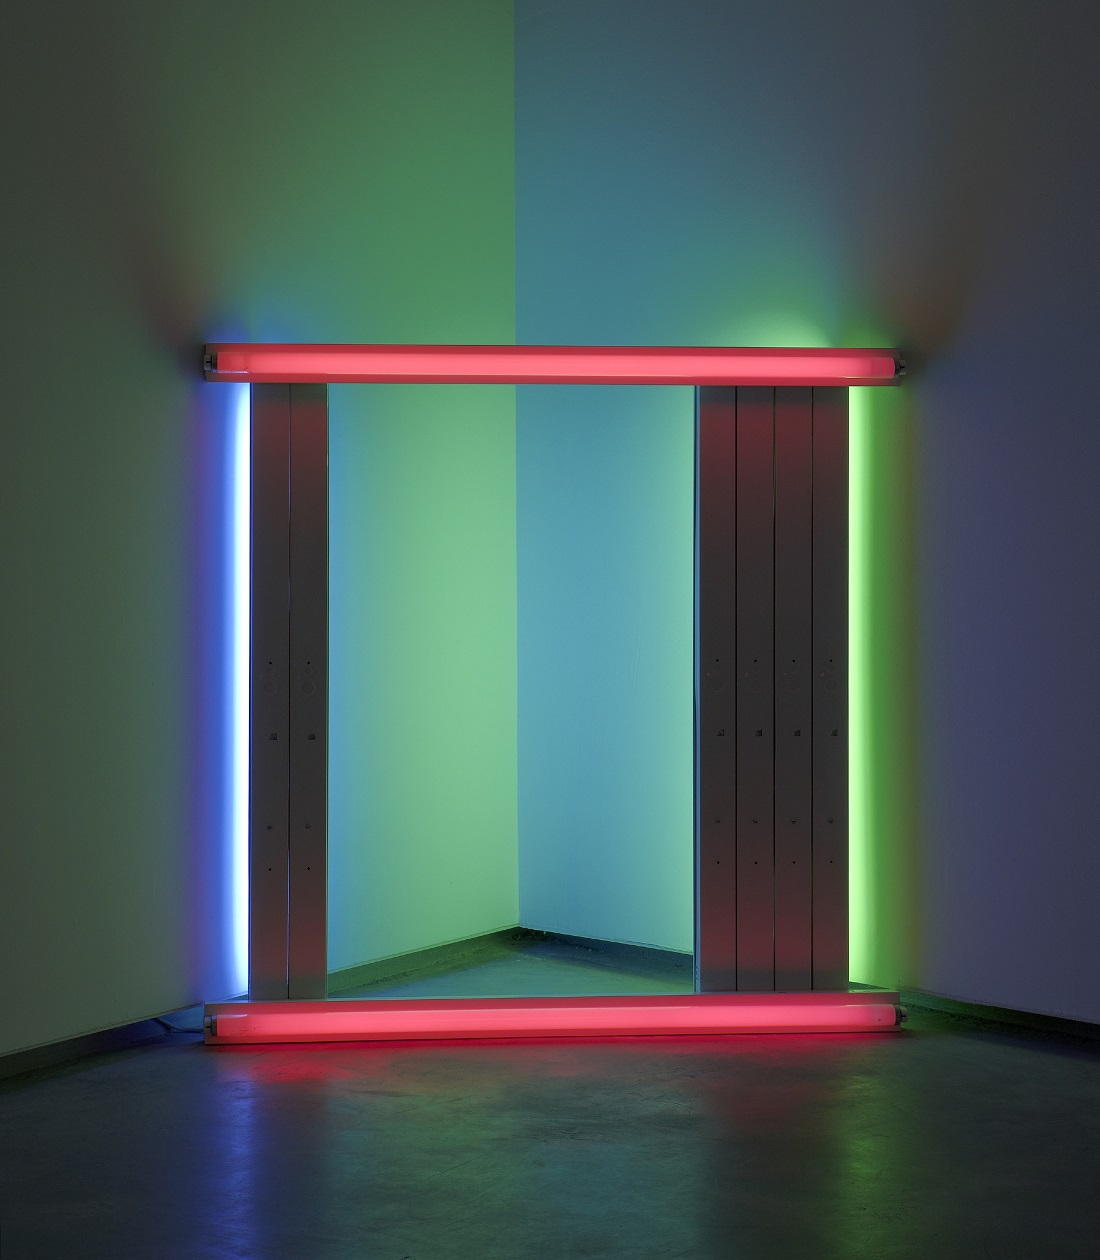 Untitled (for Ellen) (1988) - Dan Flavin